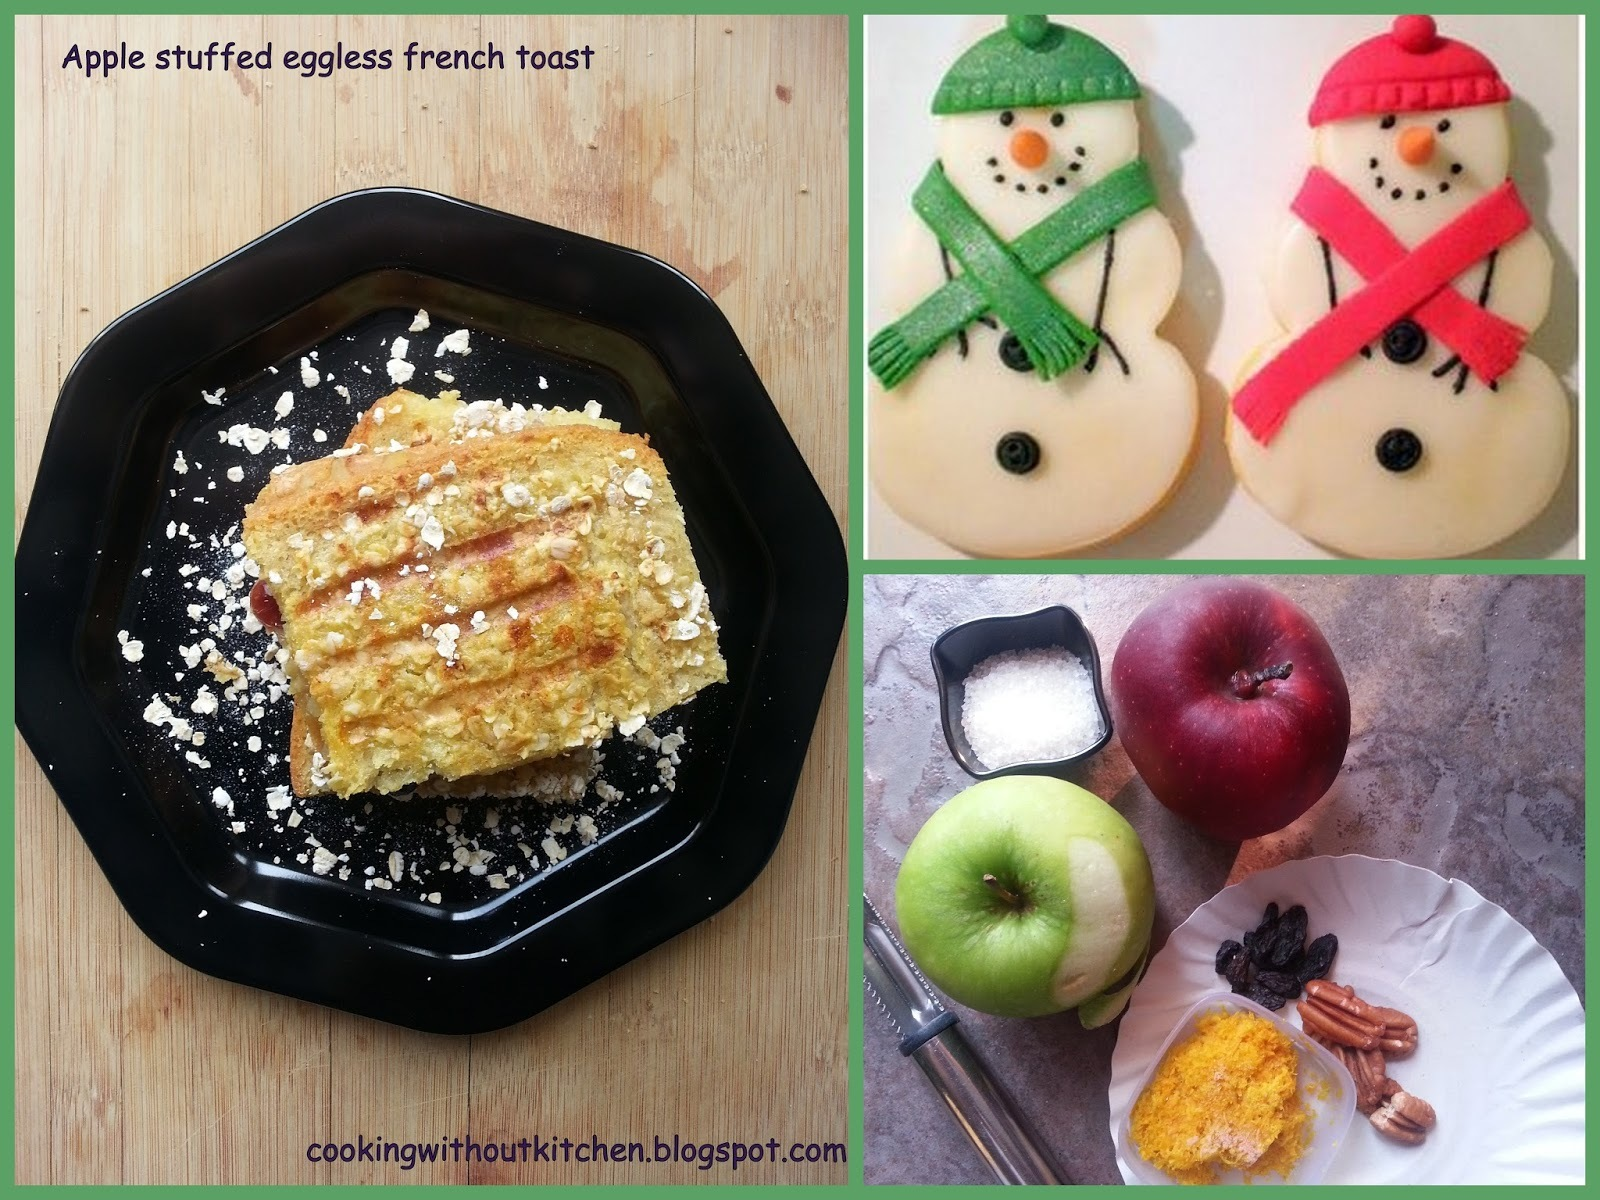 Oat Crusted Apple filled French toast (Egg free)